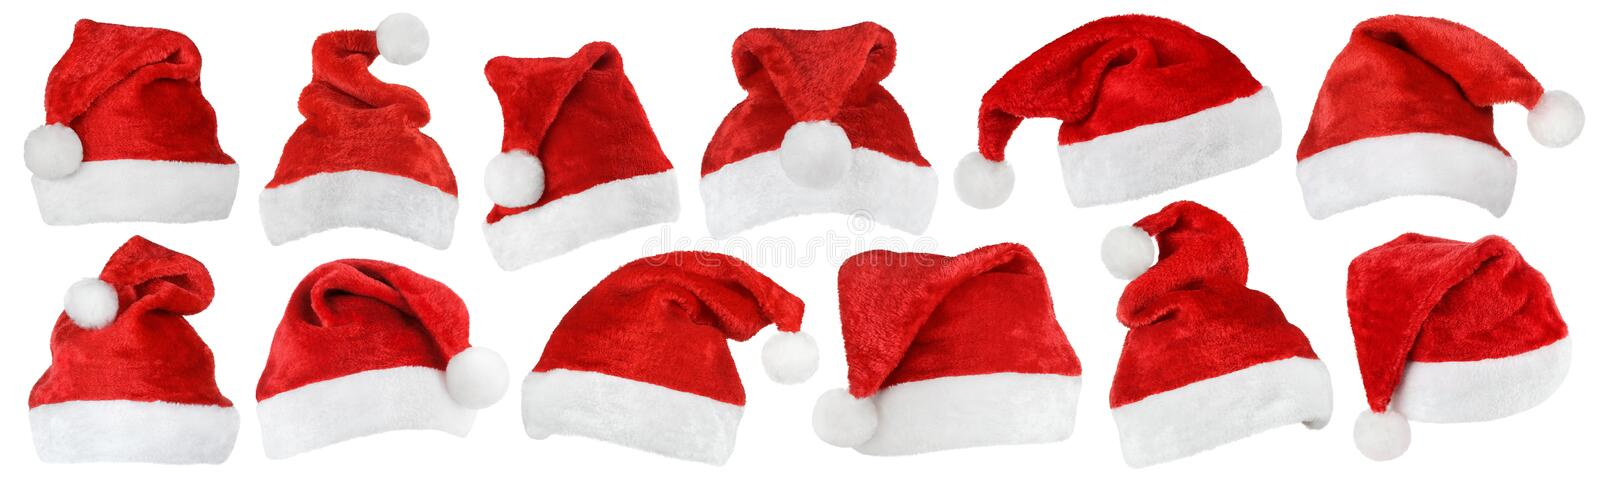 Set of Santa Claus red hats on white royalty free stock photo